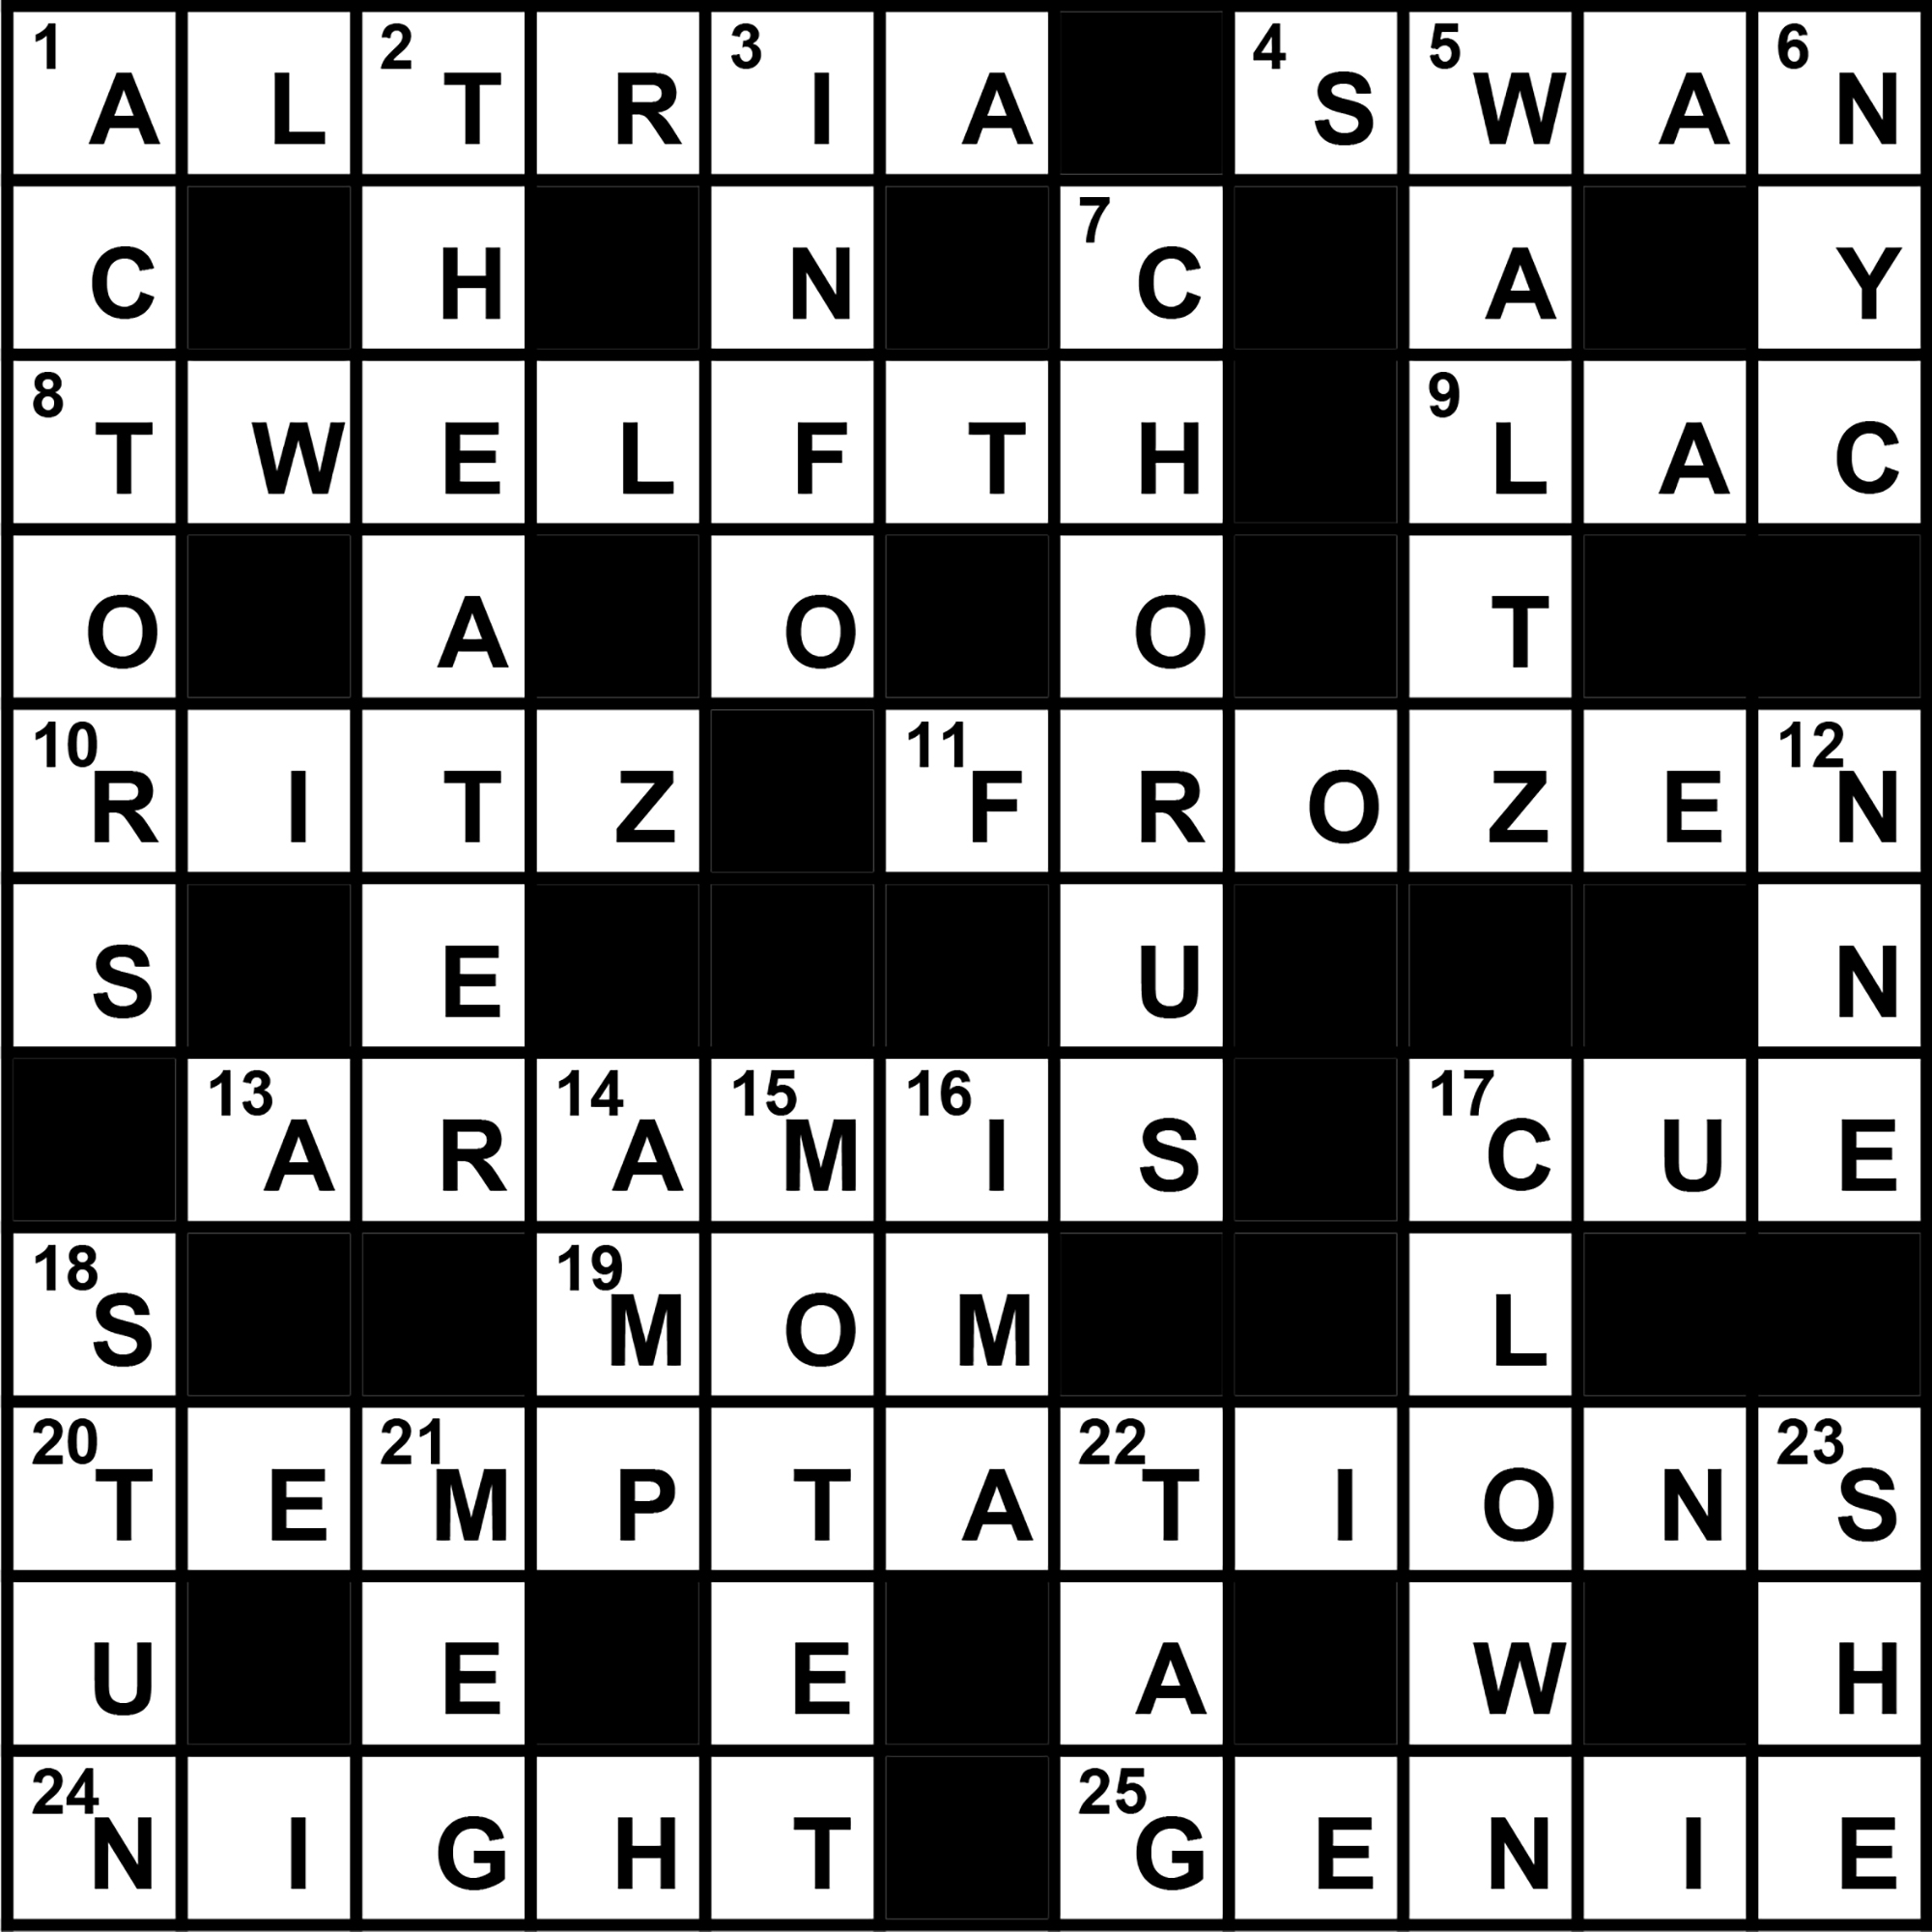 Behind the Scenes crossword puzzle solution